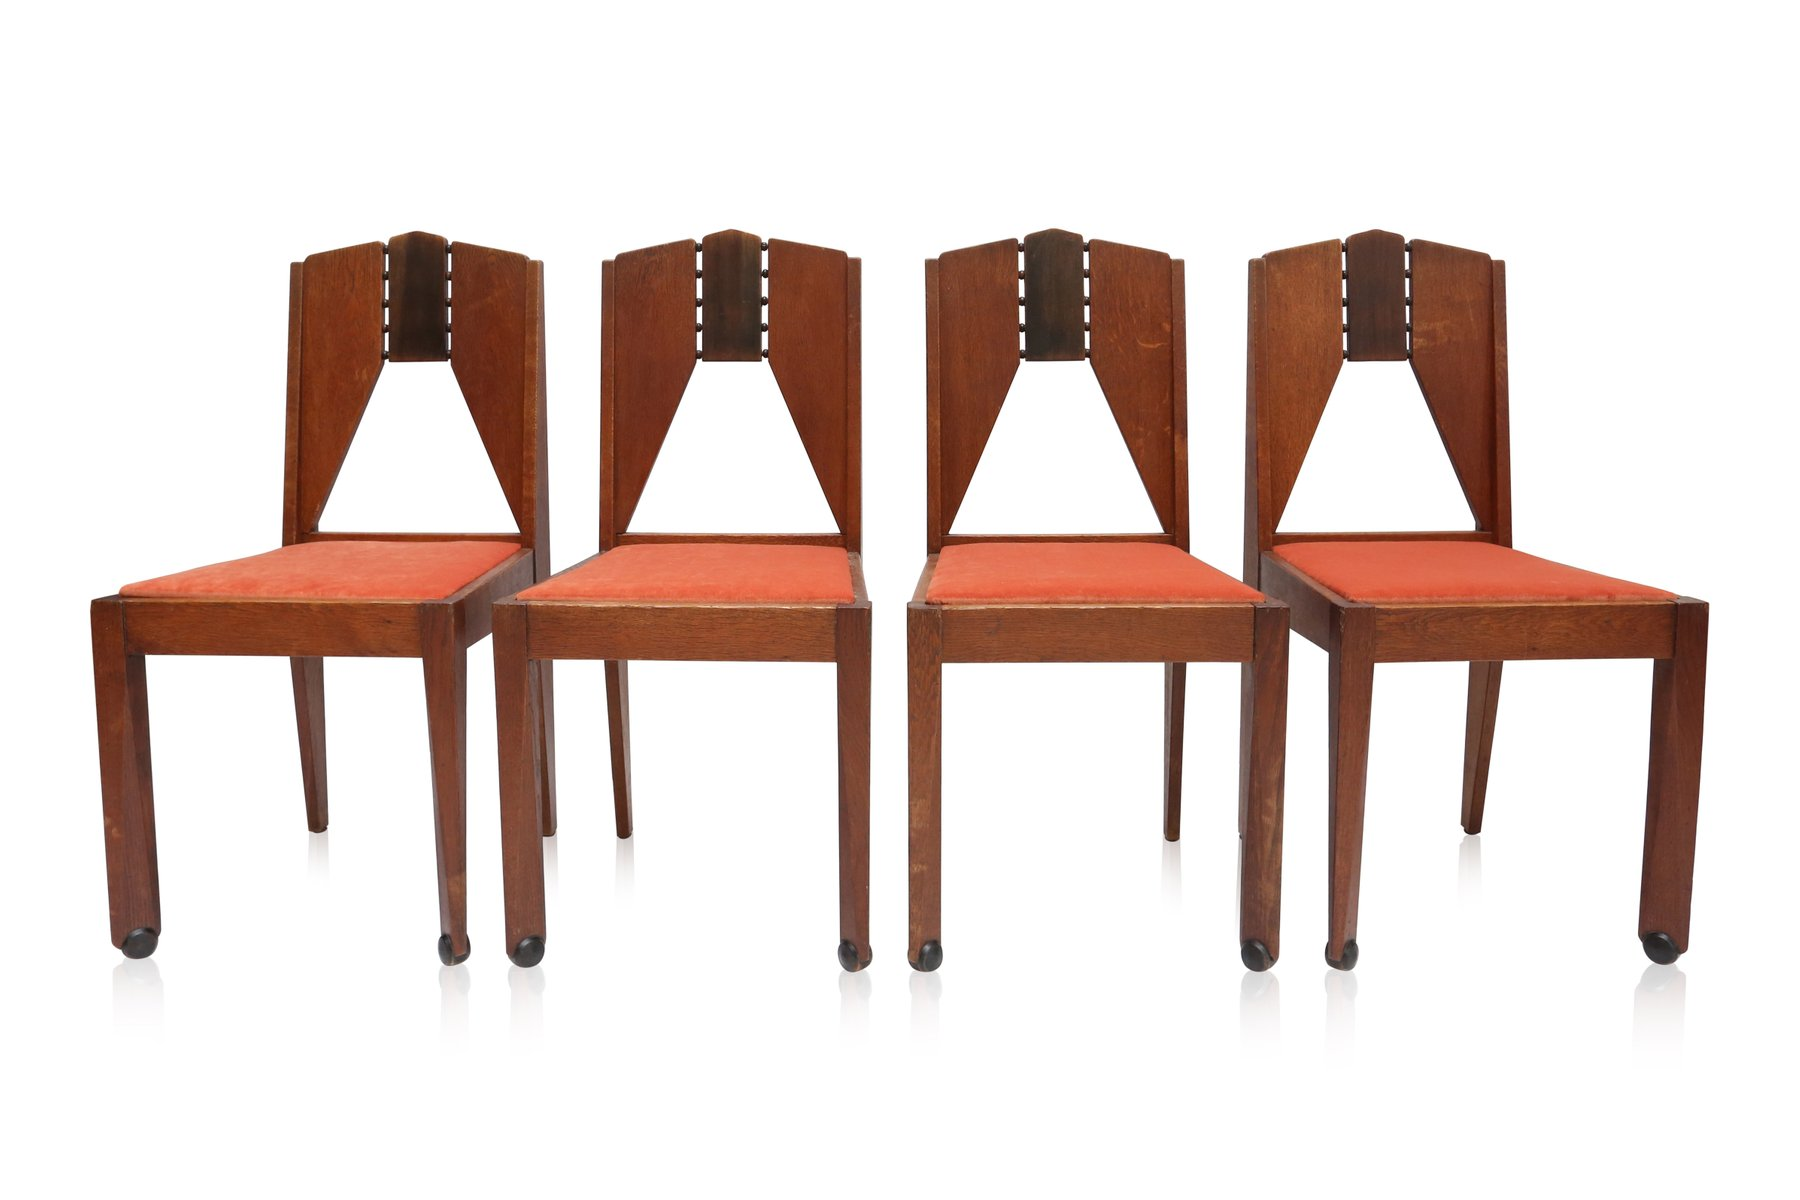 Amsterdam School Chairs 1930s Set of 4 for sale at Pamono